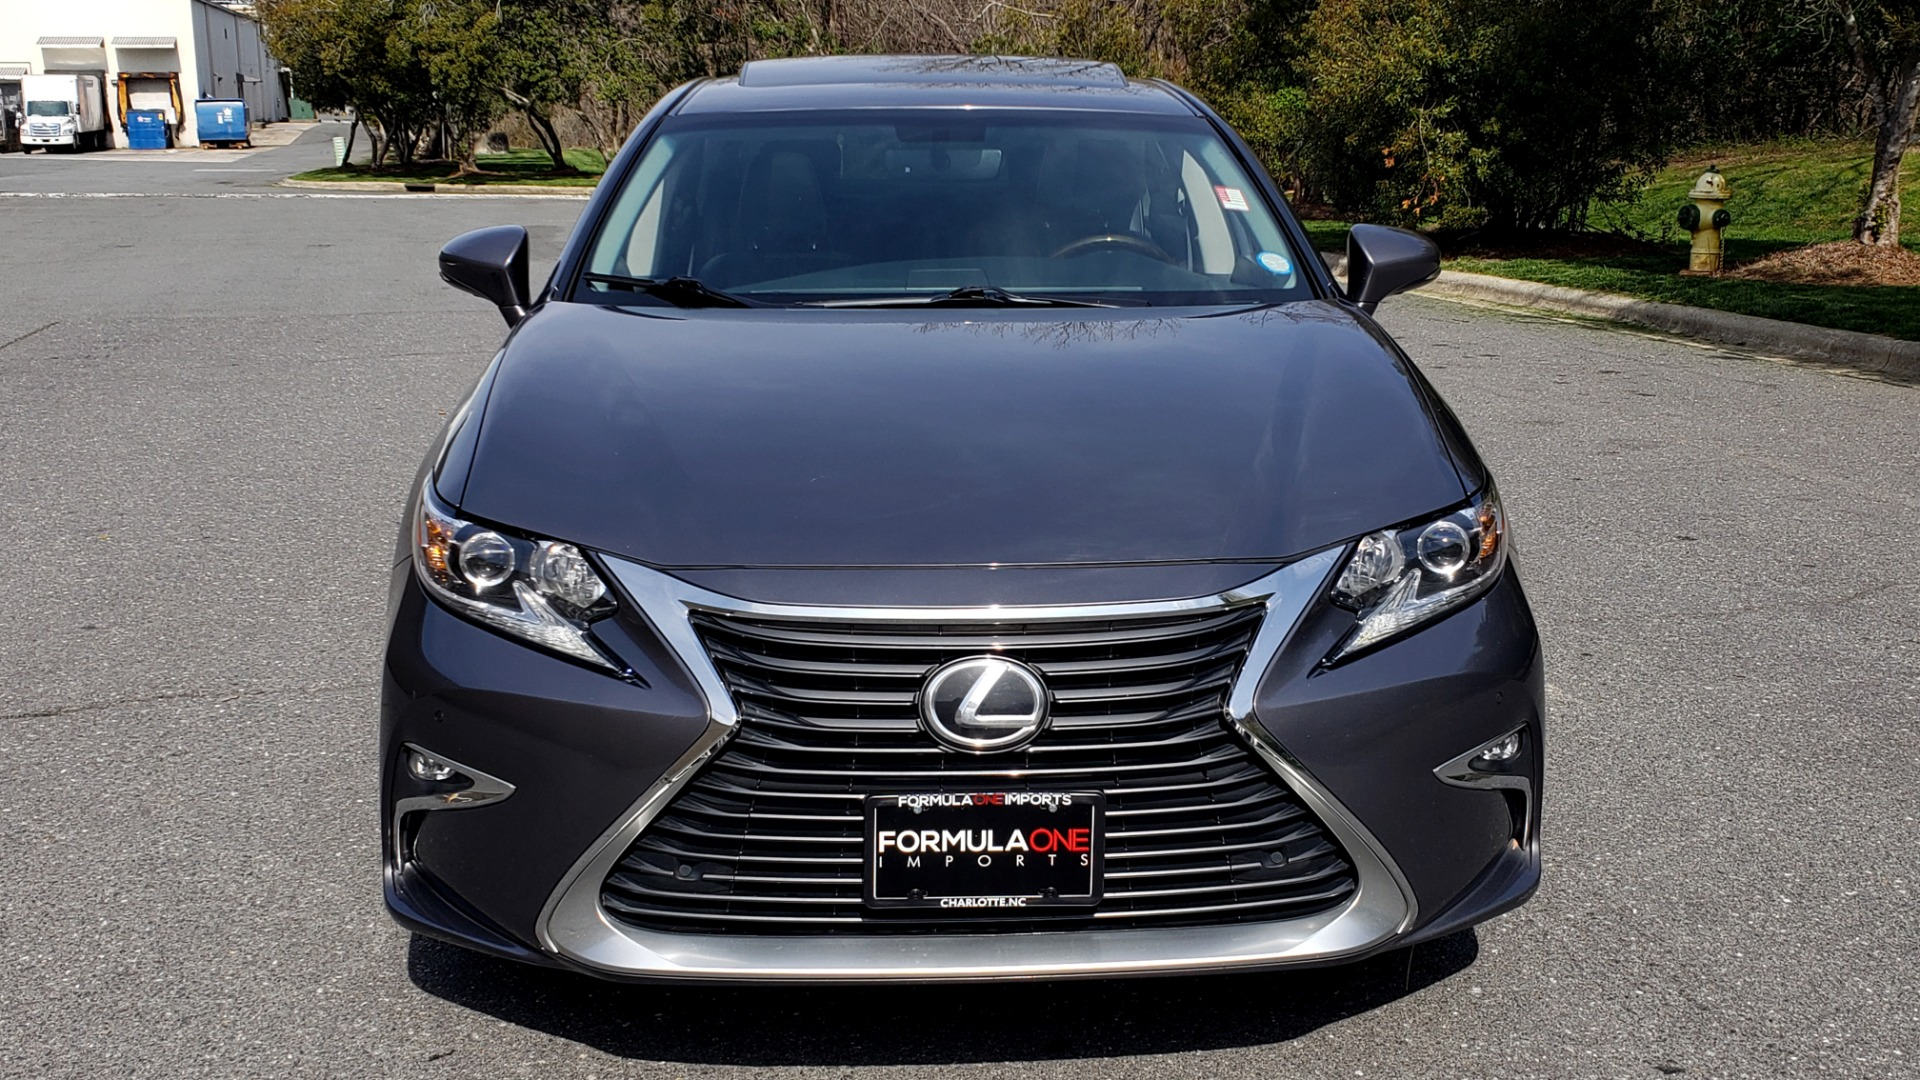 Used 2016 Lexus ES 350 4-DR PREMIUM / SUNROOF / BSM / REARVIEW / VENT STS for sale Sold at Formula Imports in Charlotte NC 28227 18